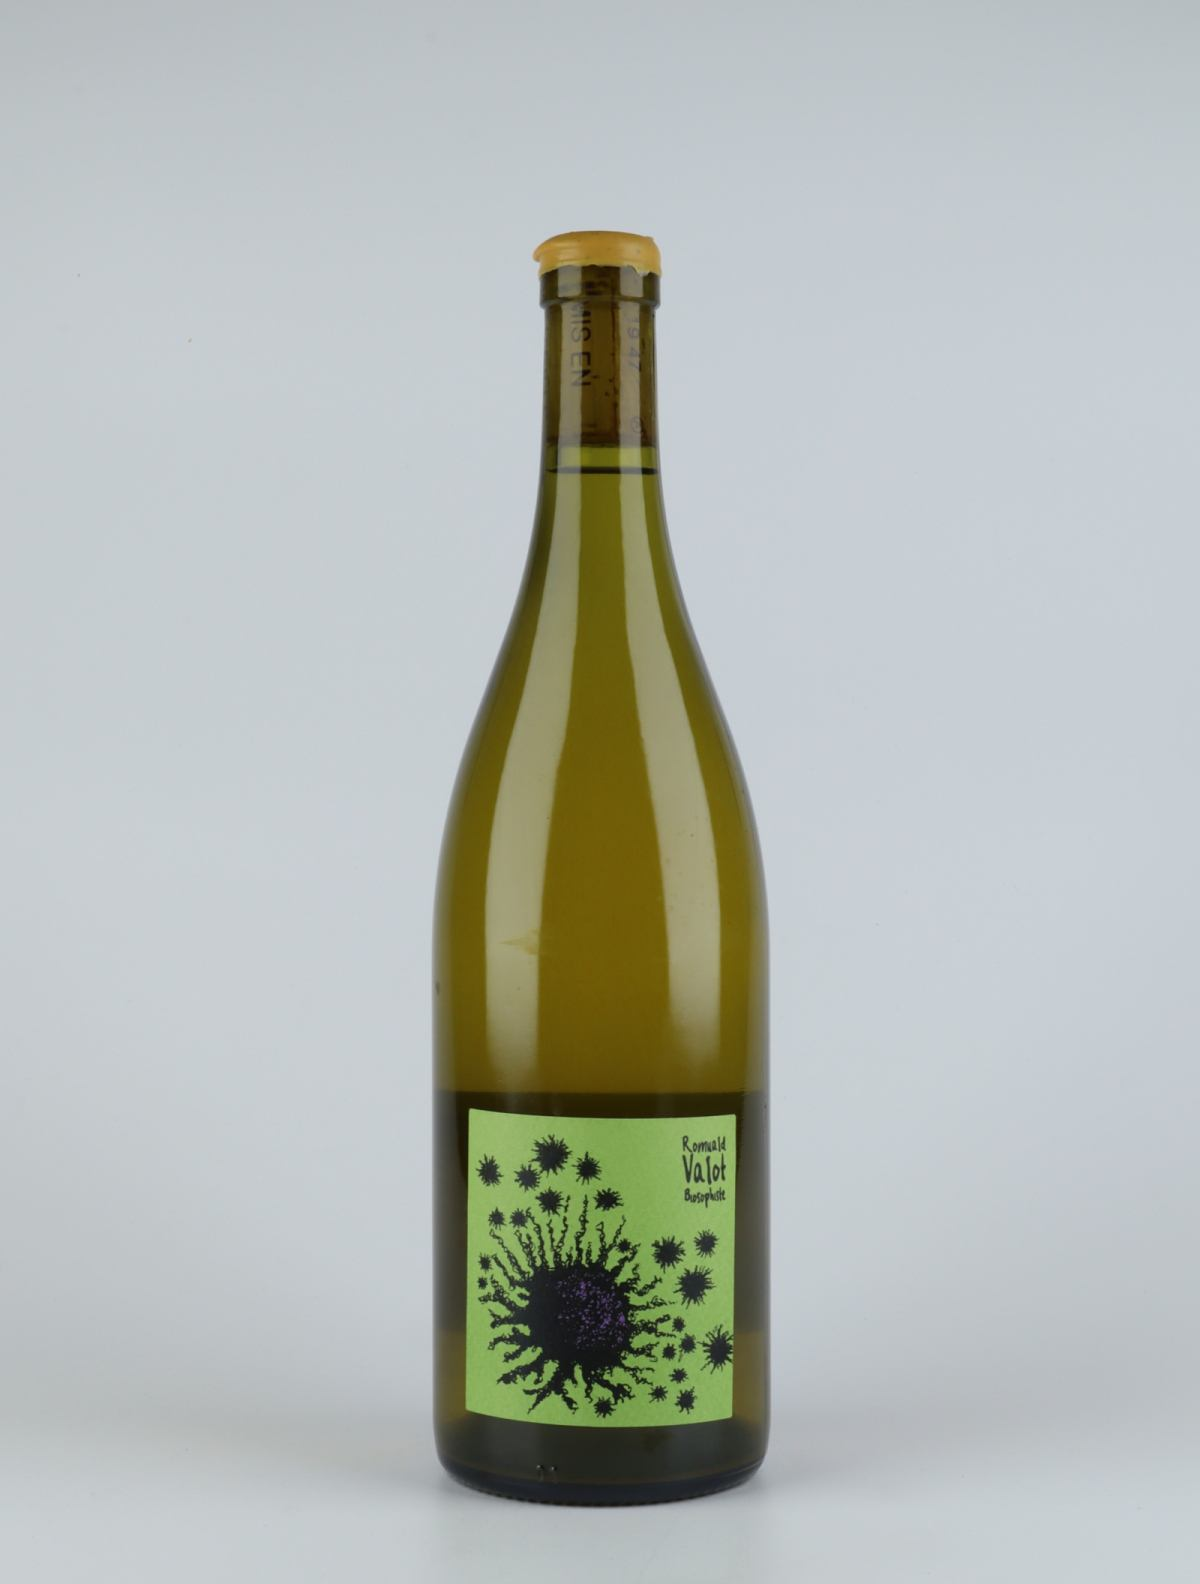 Beaujolais Blanc - Anticonformiste